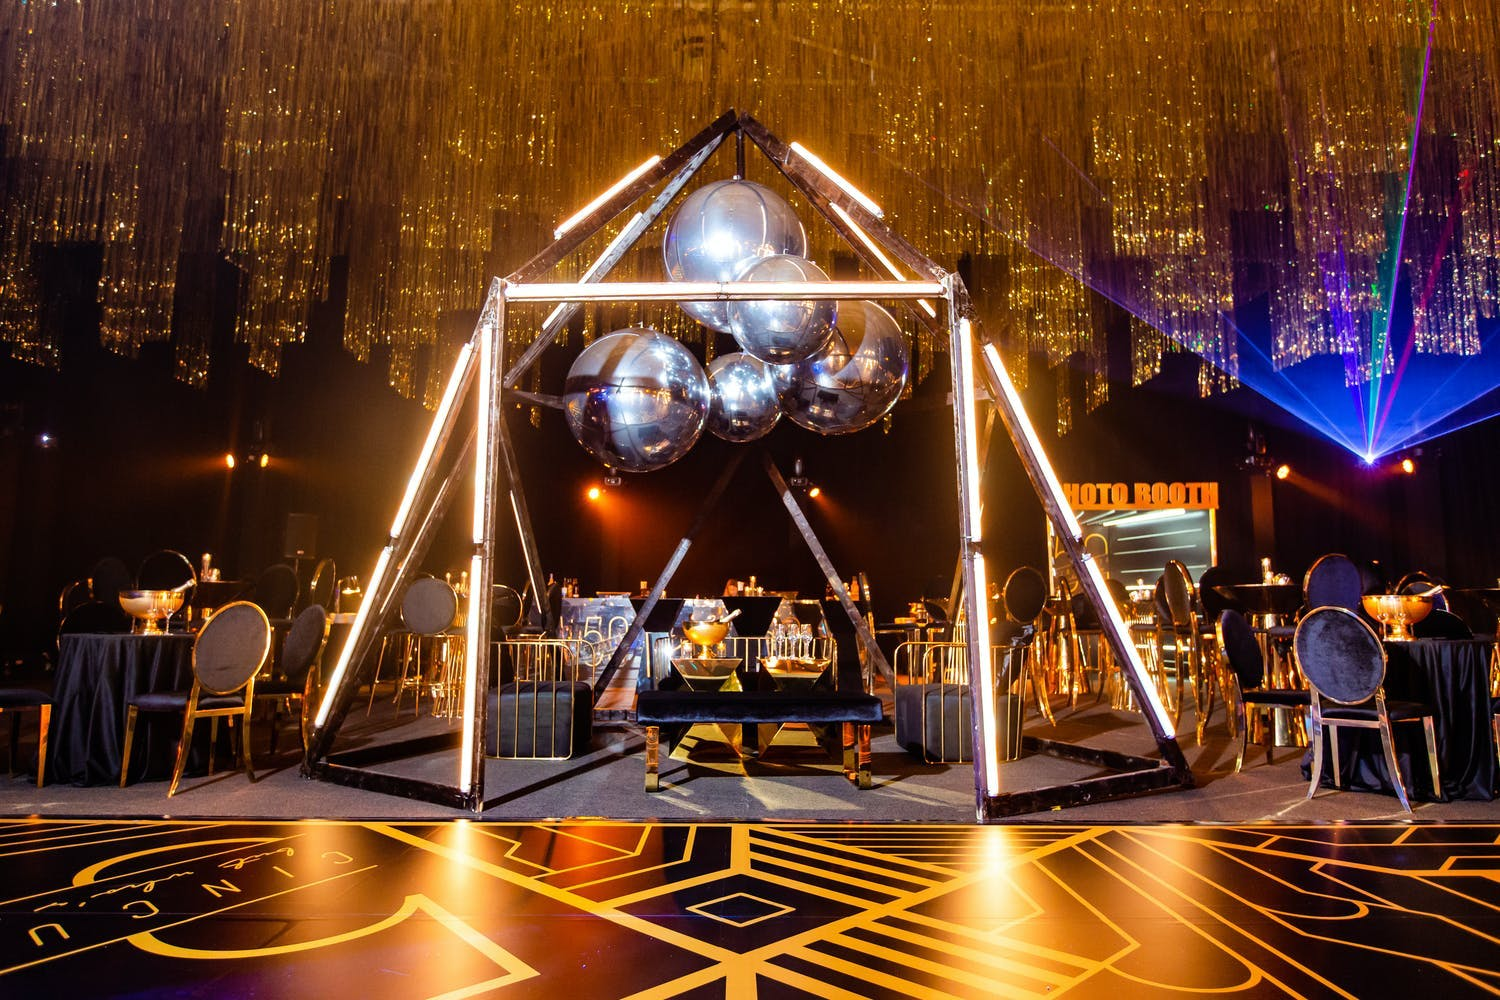 Golden pillar lights create a dome-like structure over a seating area at 50th-birthday party | PartySlate